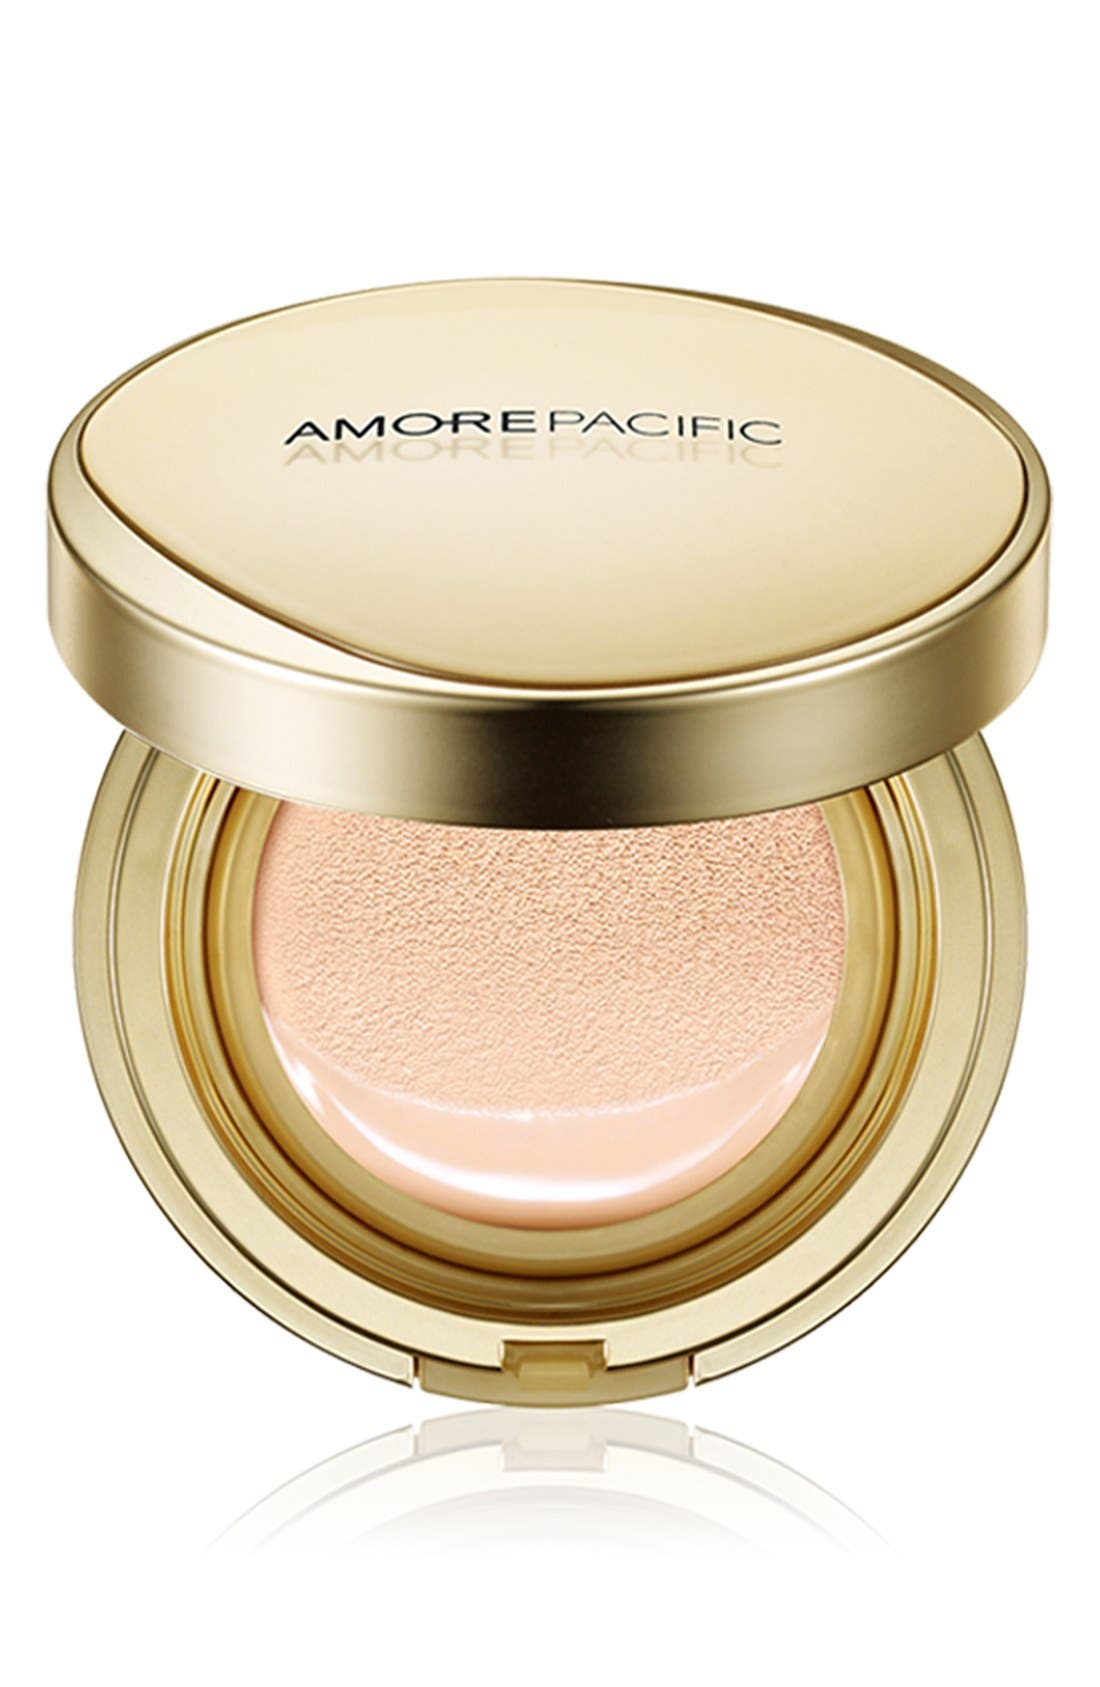 Age Correcting Foundation Cushion Broad Spectrum SPF 25,                         Main,                         color, 102 - LIGHT PINK